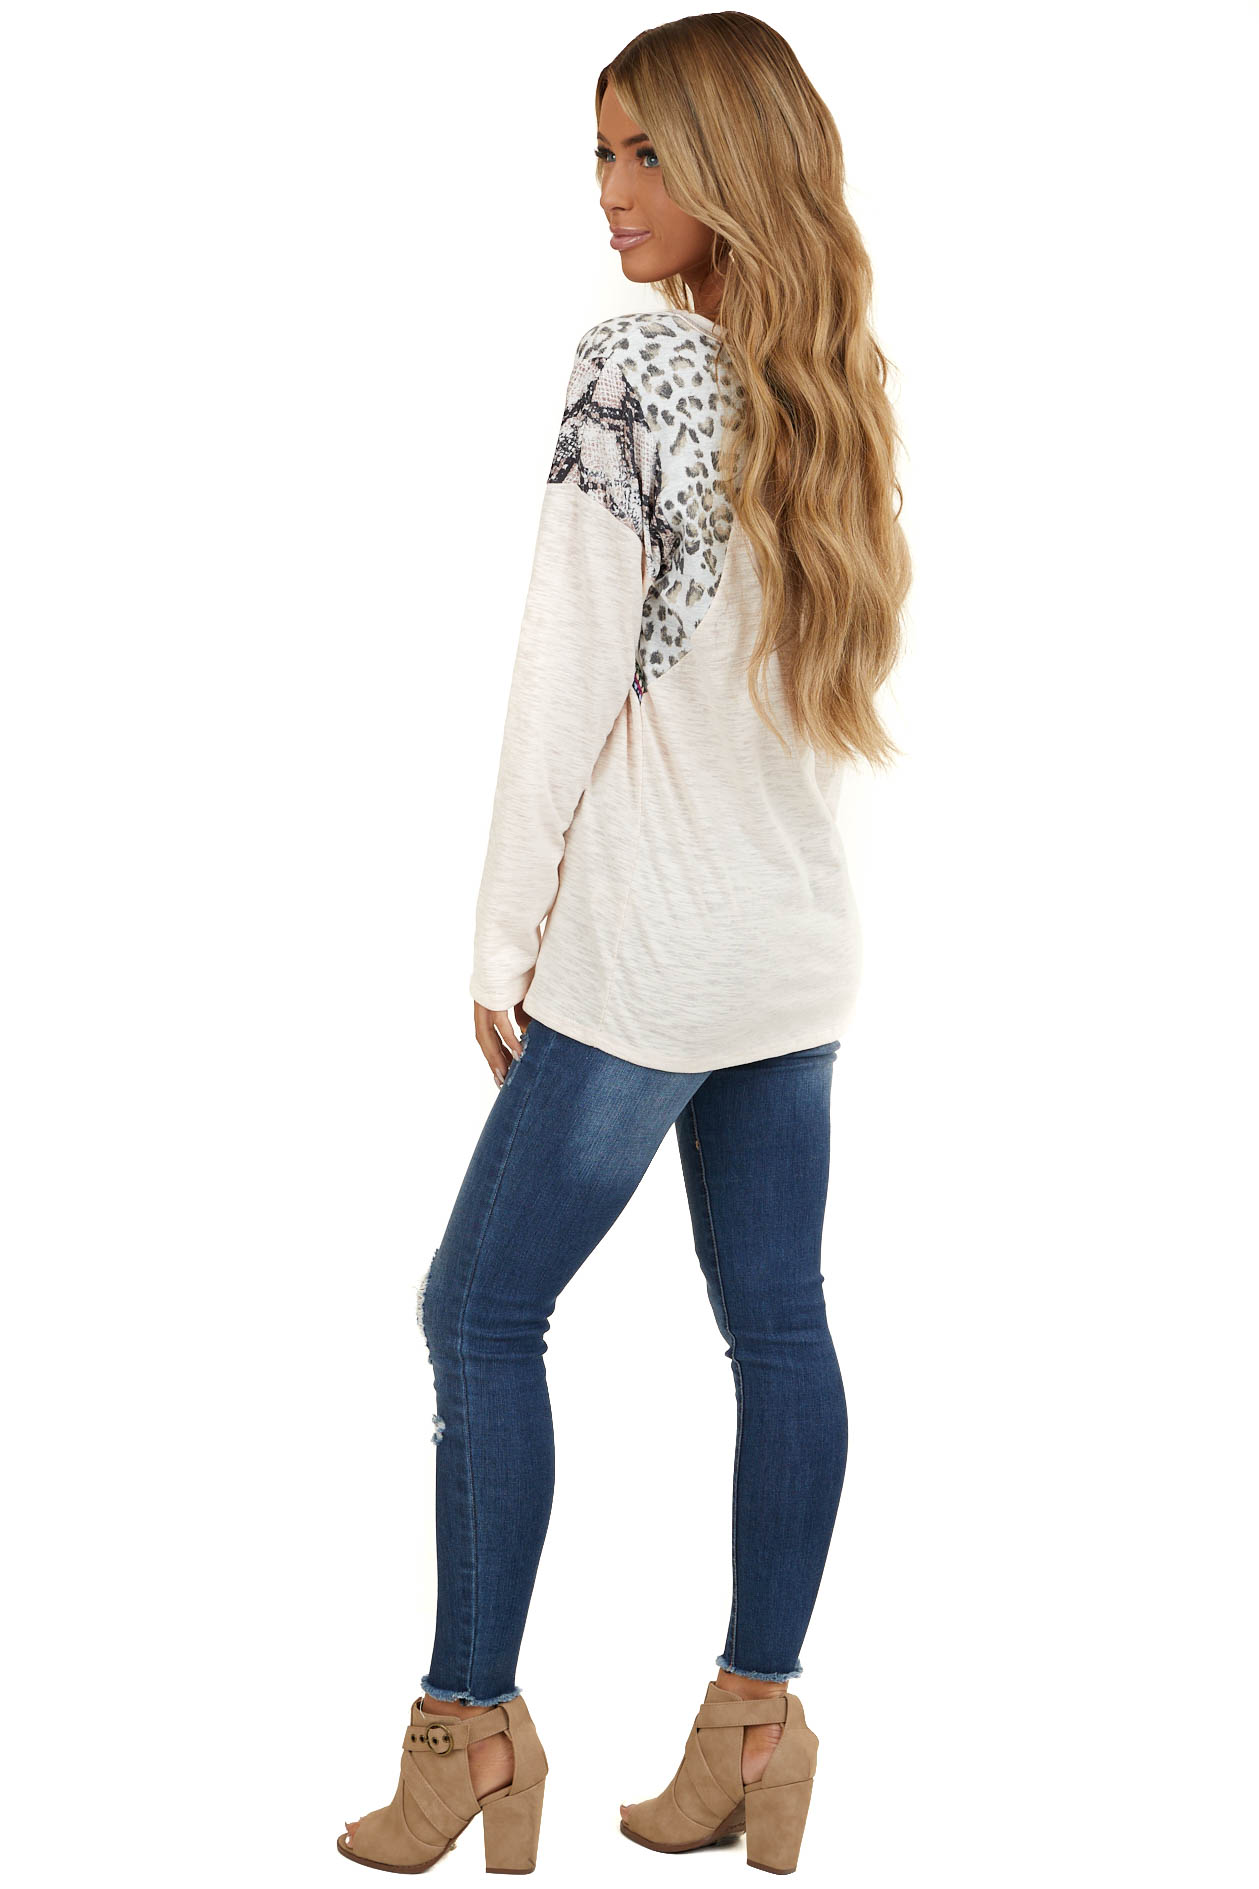 Pale Peach Long Sleeve Top with Leopard and Snakeskin Print